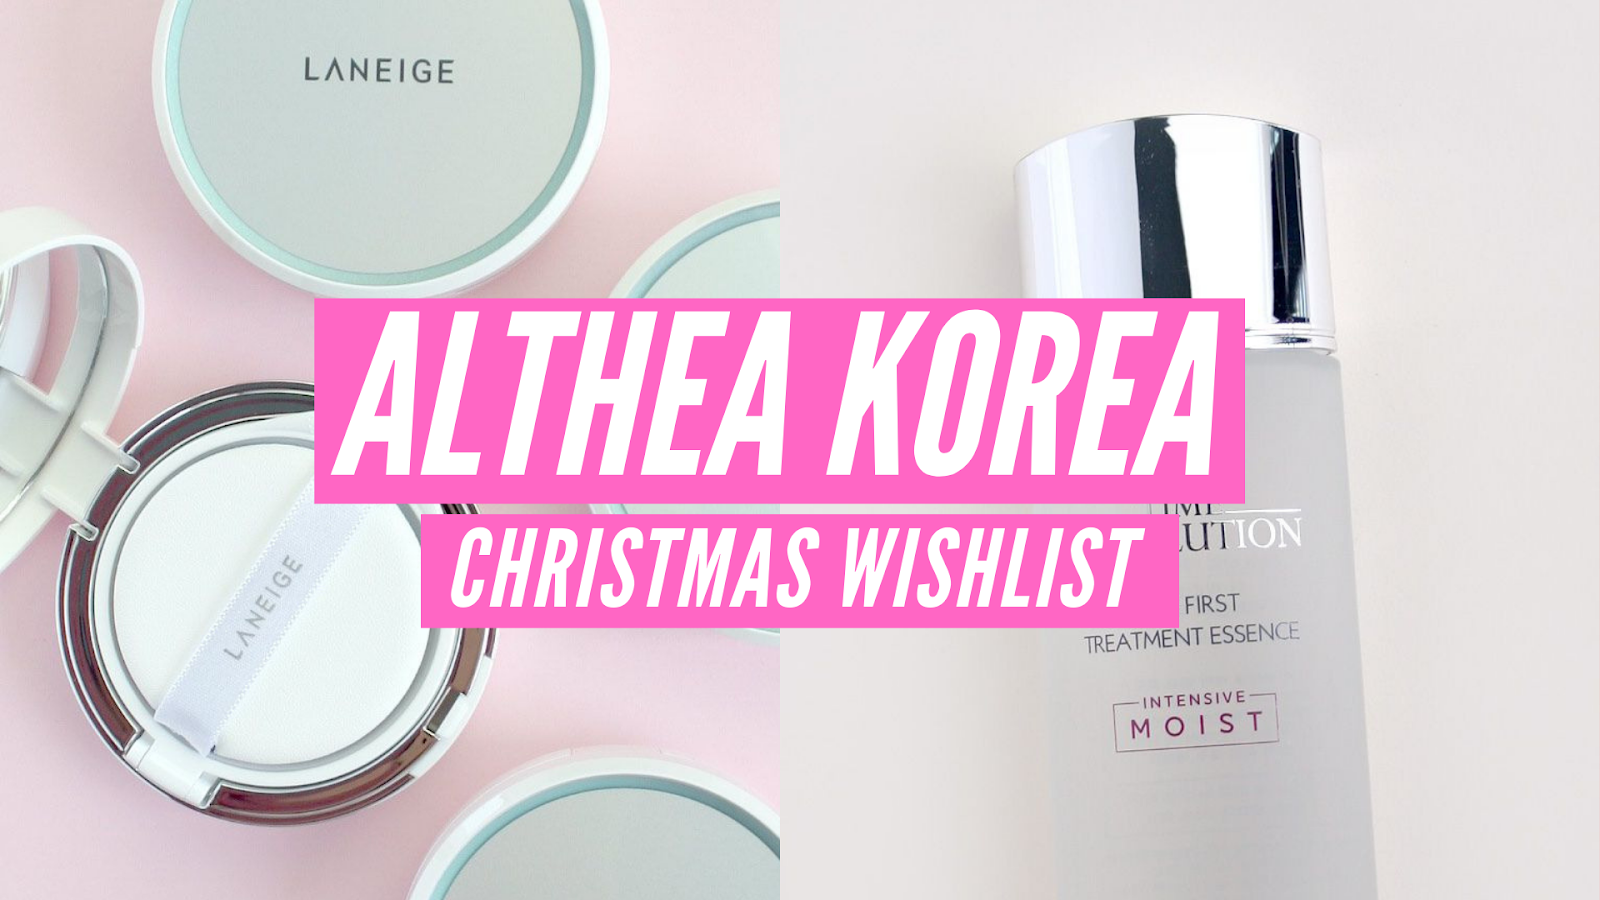 All I want for Christmas: My Althea Korea Christmas Wishlist